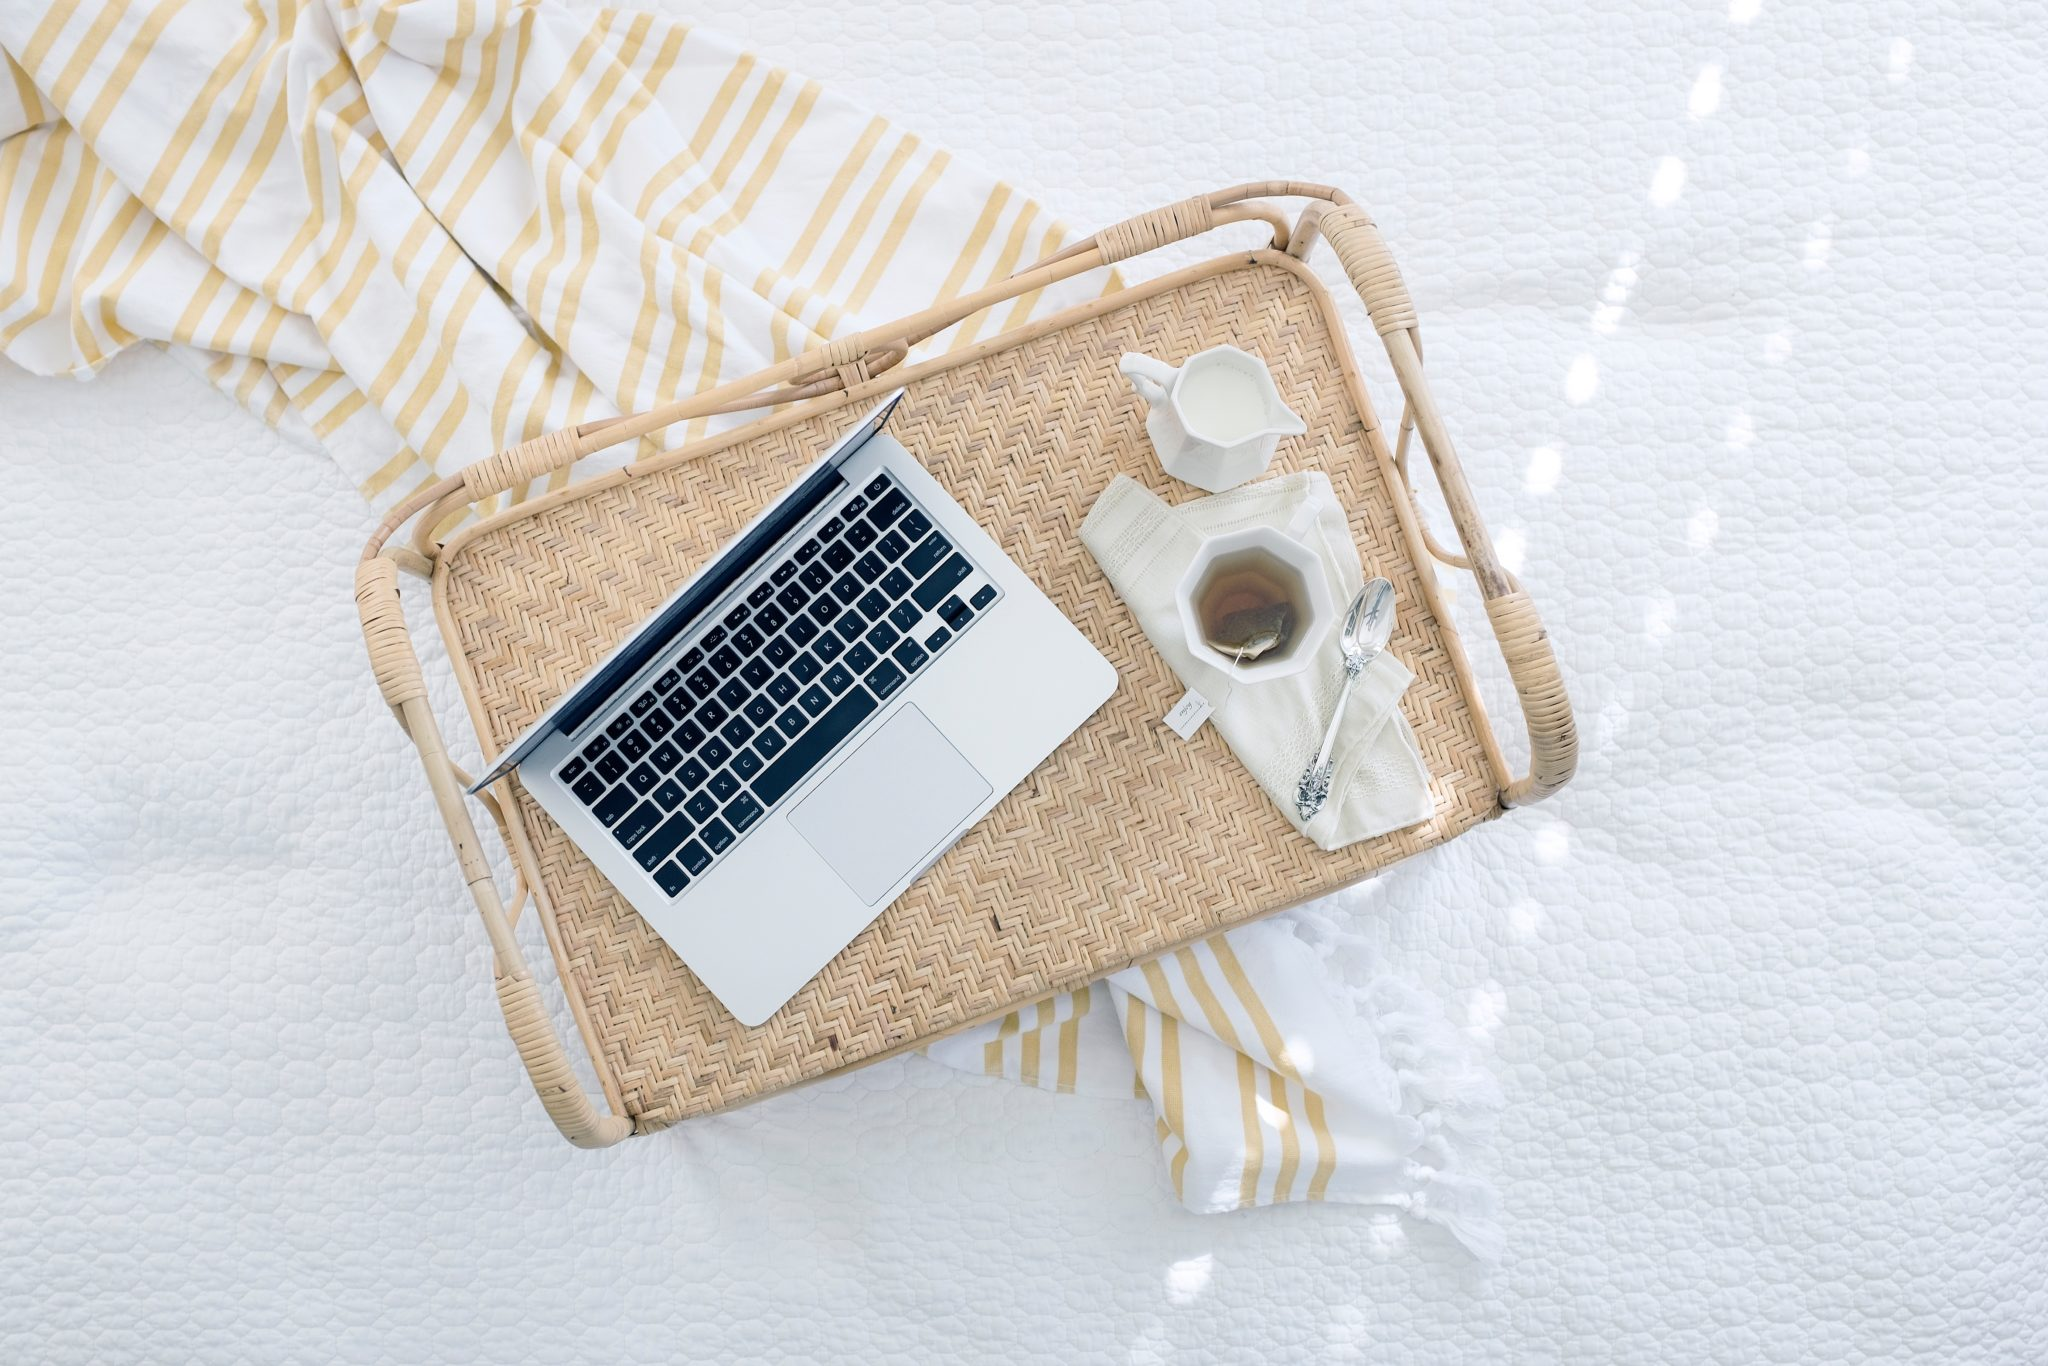 Cozy Flay lay | © Lauren Mancke/Unsplash